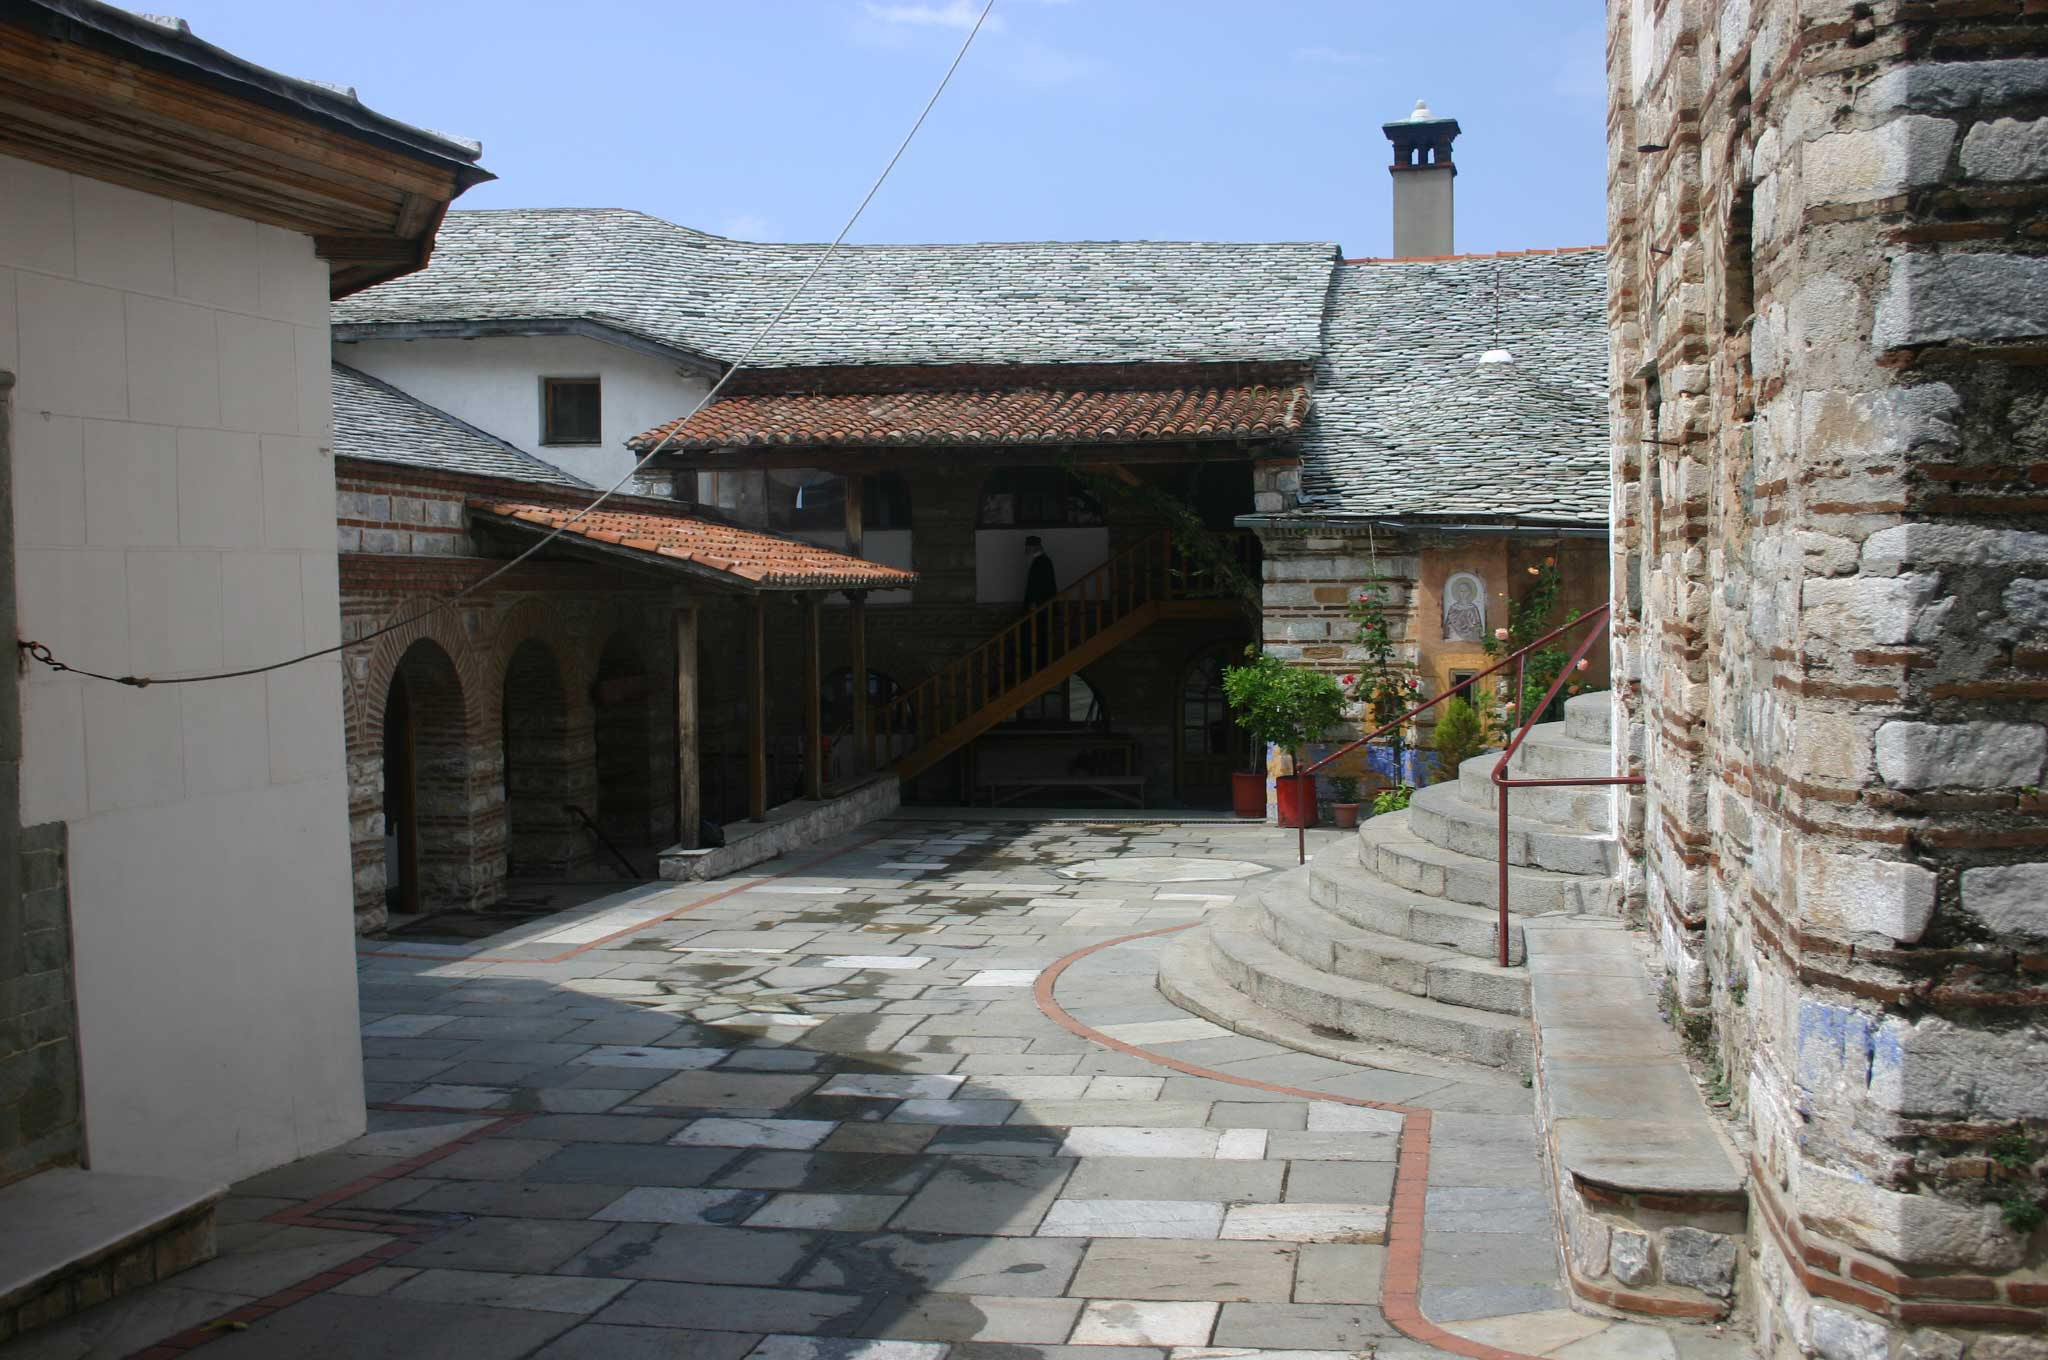 Mount Athos: Mt Athos - Grigoriou Courtyard - © William Mackesy